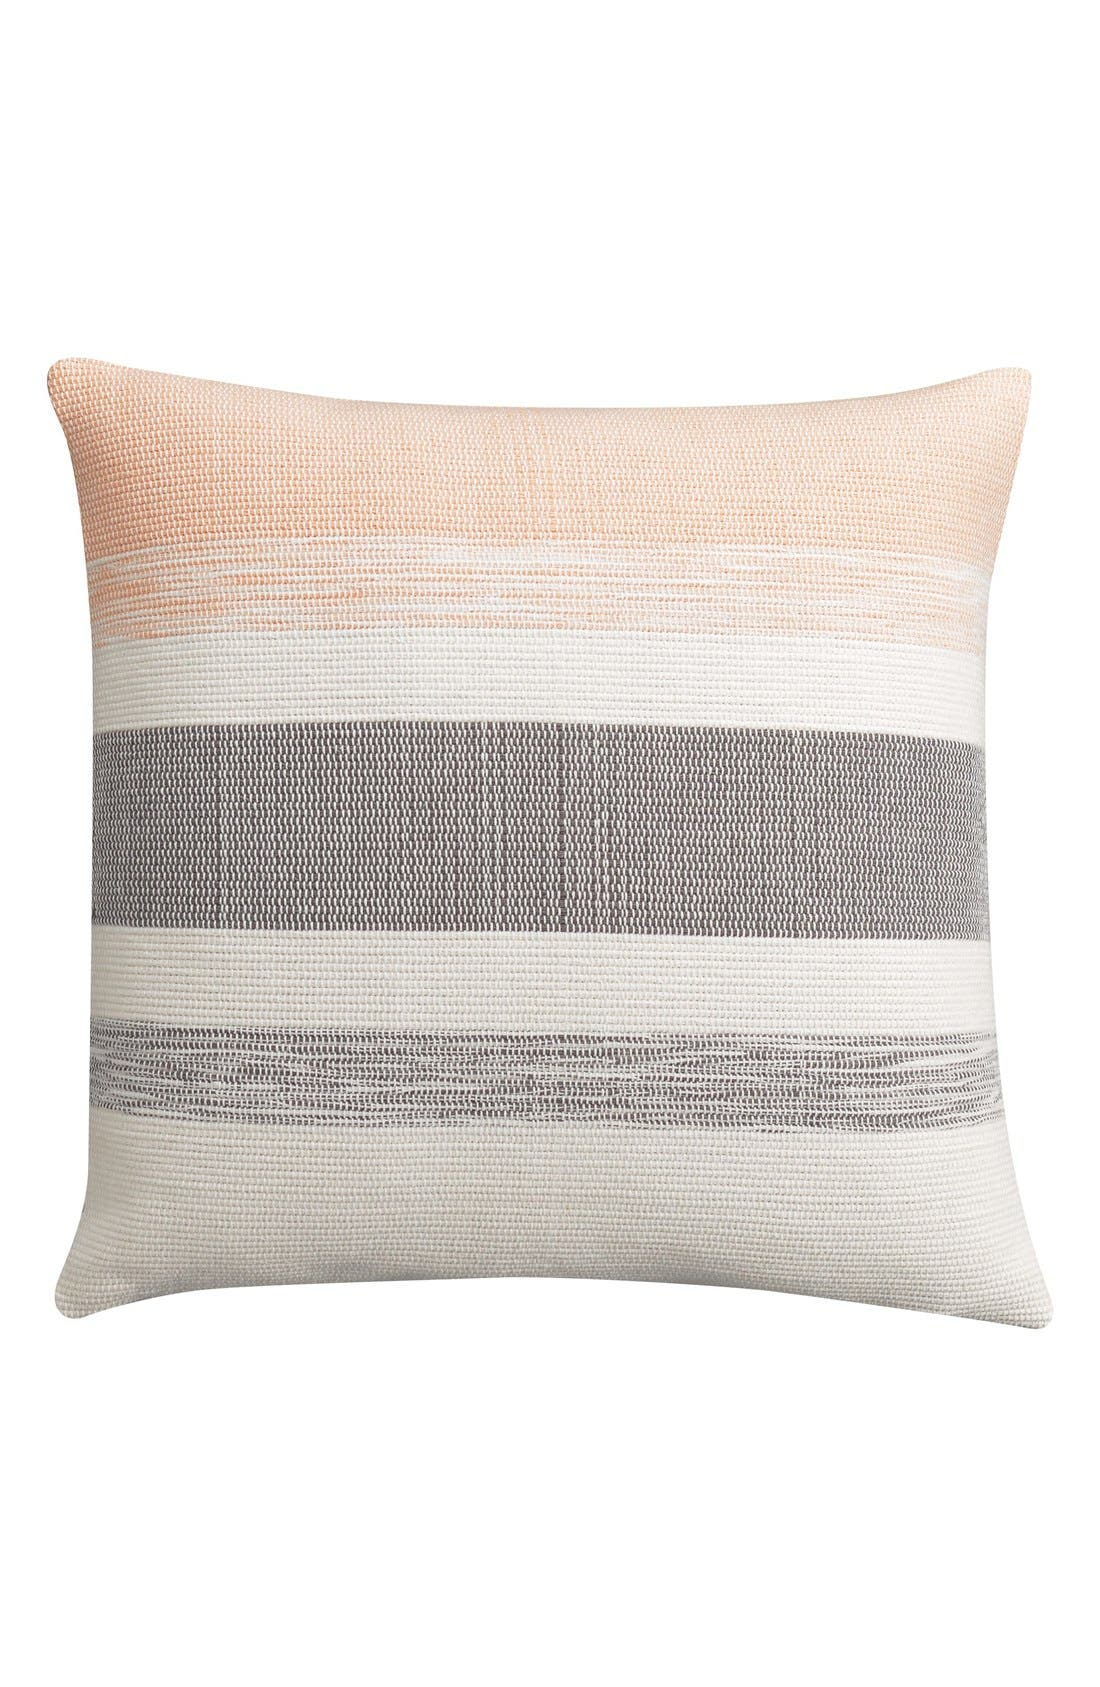 Alternate Image 1 Selected - cupcakes and cashmere Stripe Accent Pillow